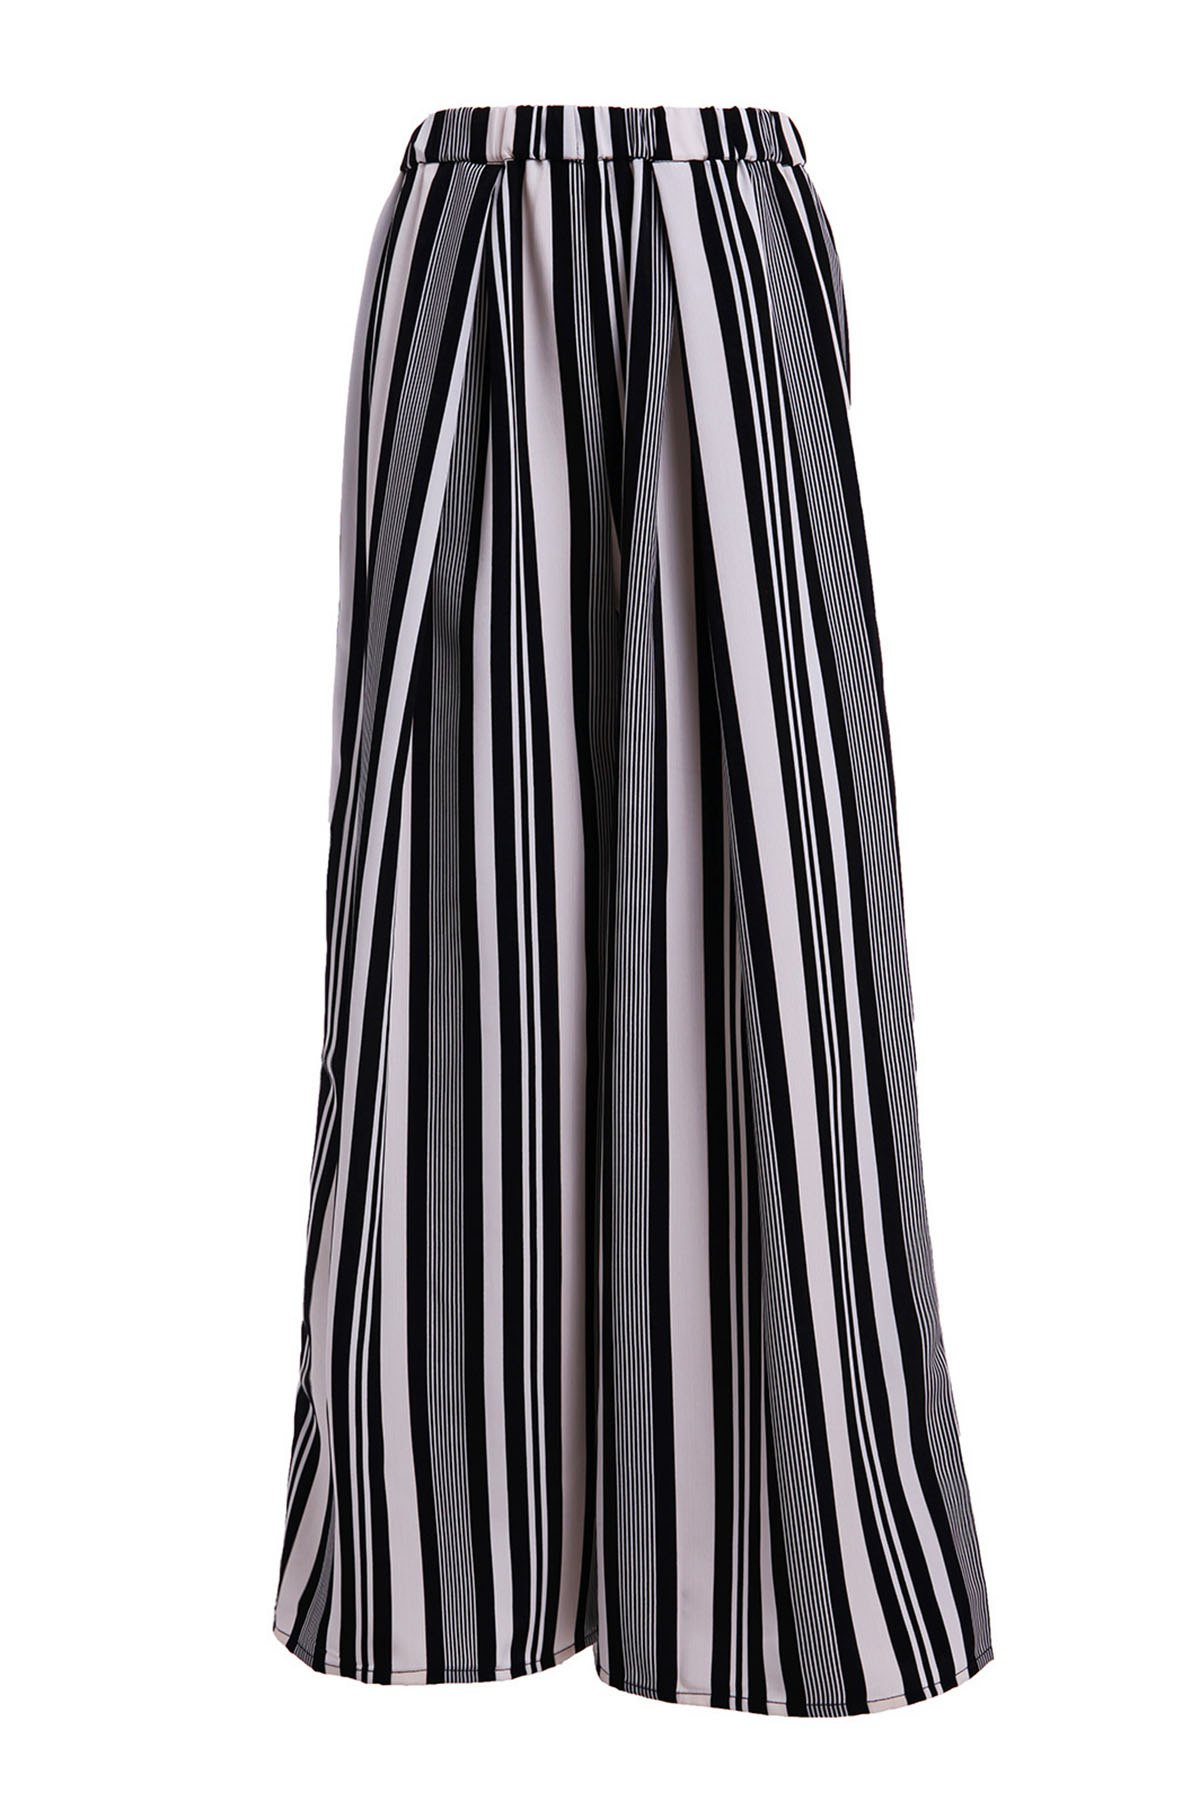 Trendy Vertical Striped Wide-Leg Palazzo Pants